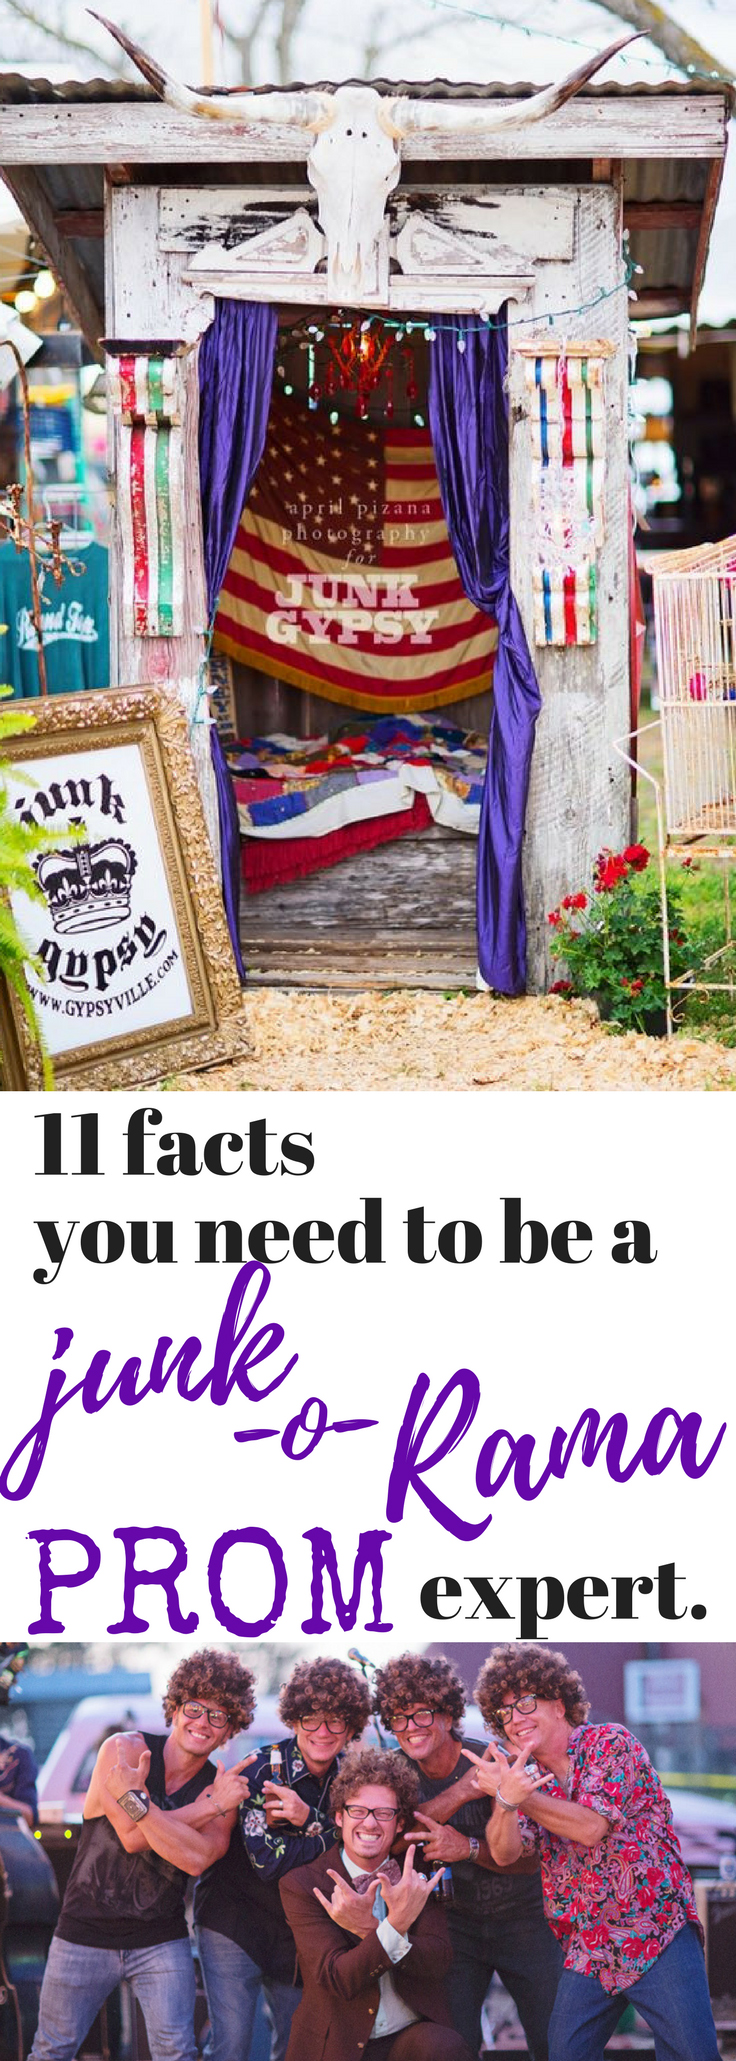 11 facts you need to be a junk-o-rama prom expert